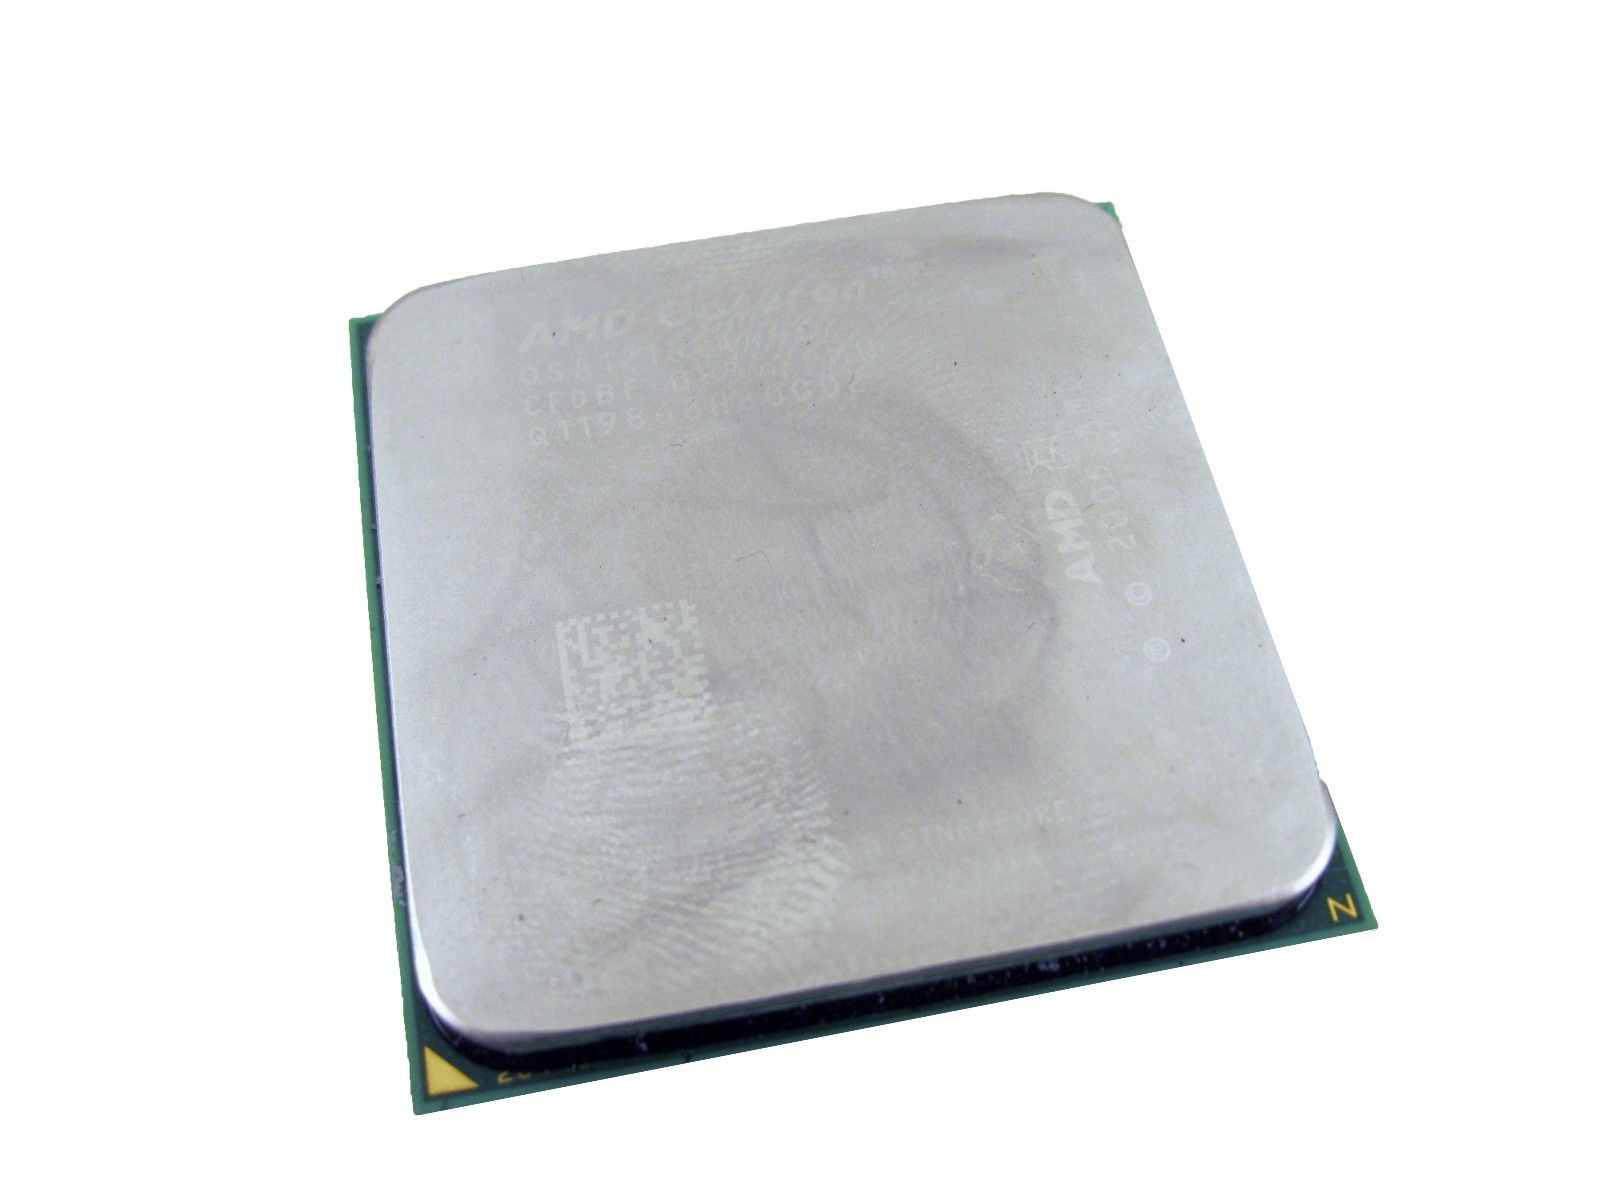 AMD OSA1216IAA6CZ Opteron 1216 2.4 GHz Dual Core CPU Processor